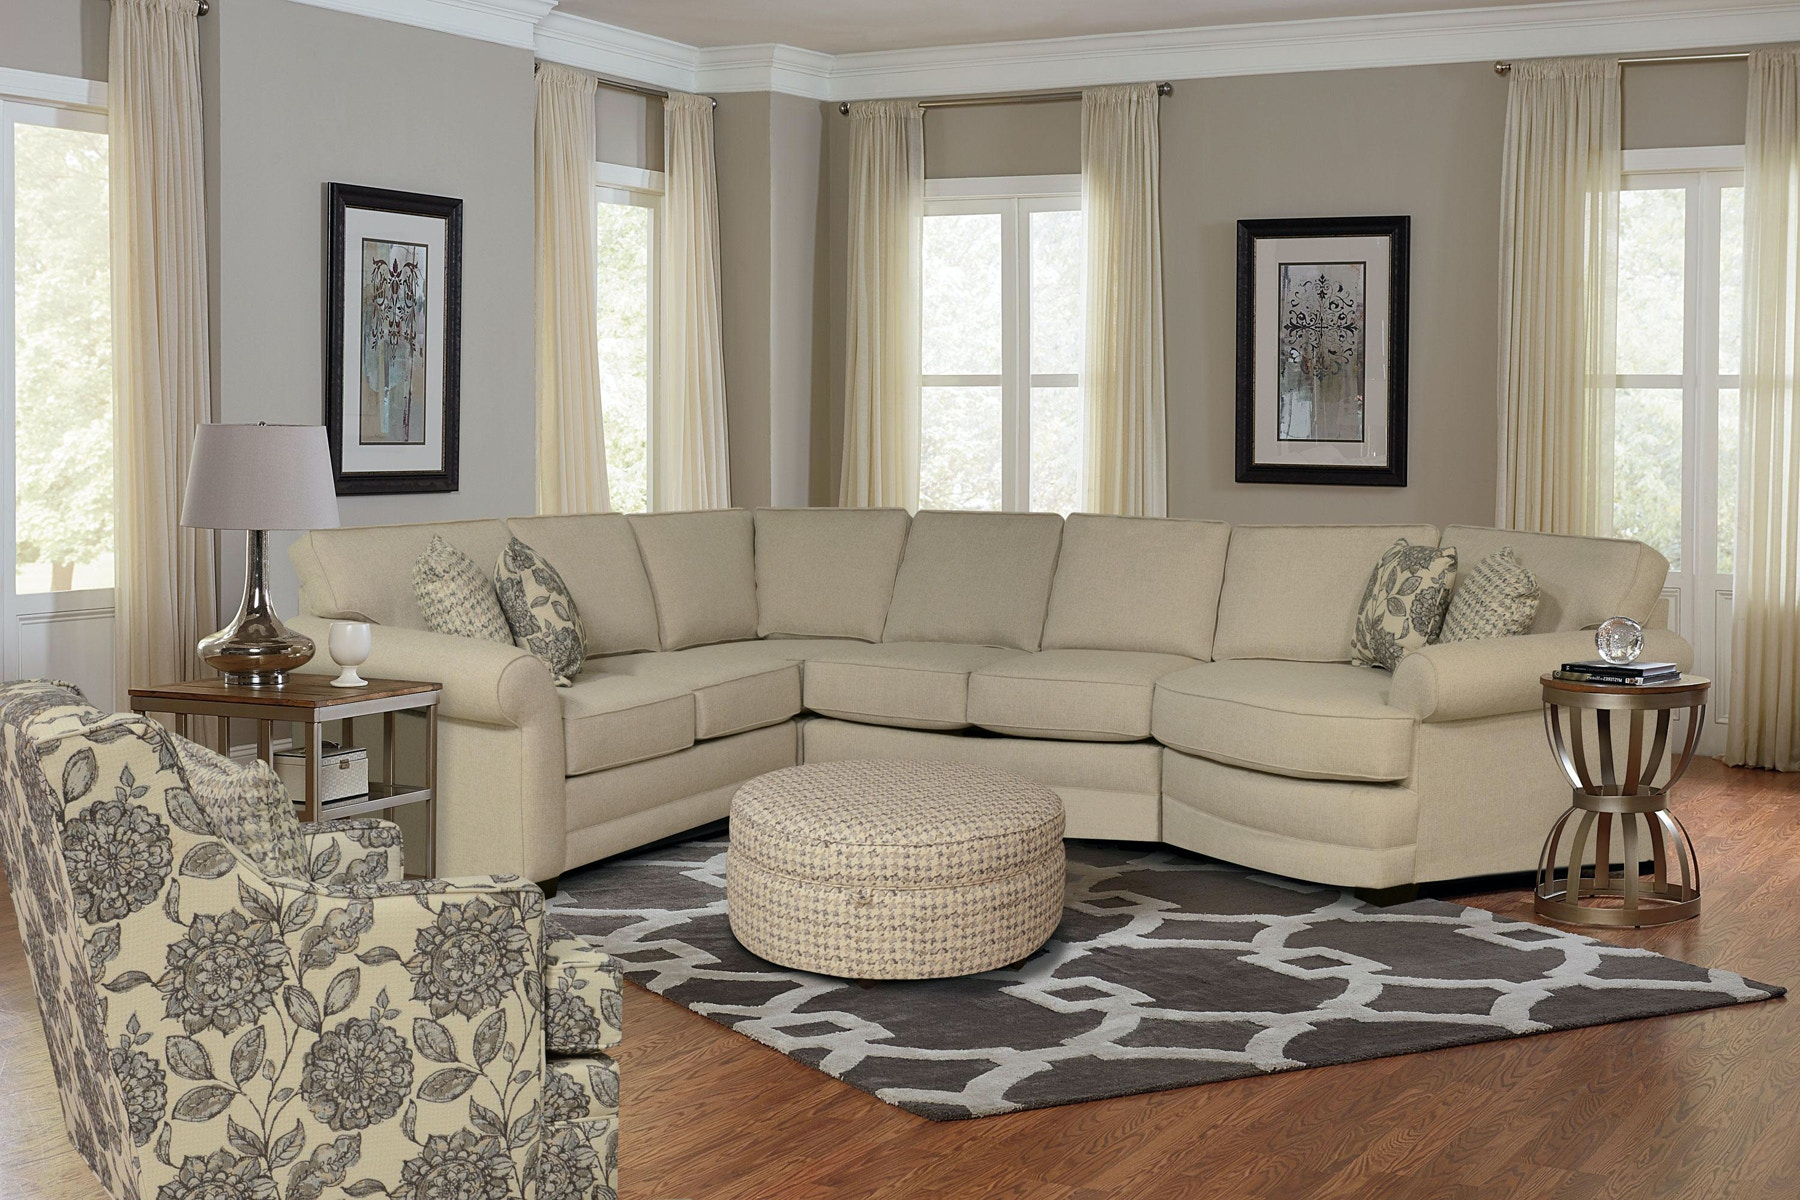 939488. Brantley Right Cuddler Sectional